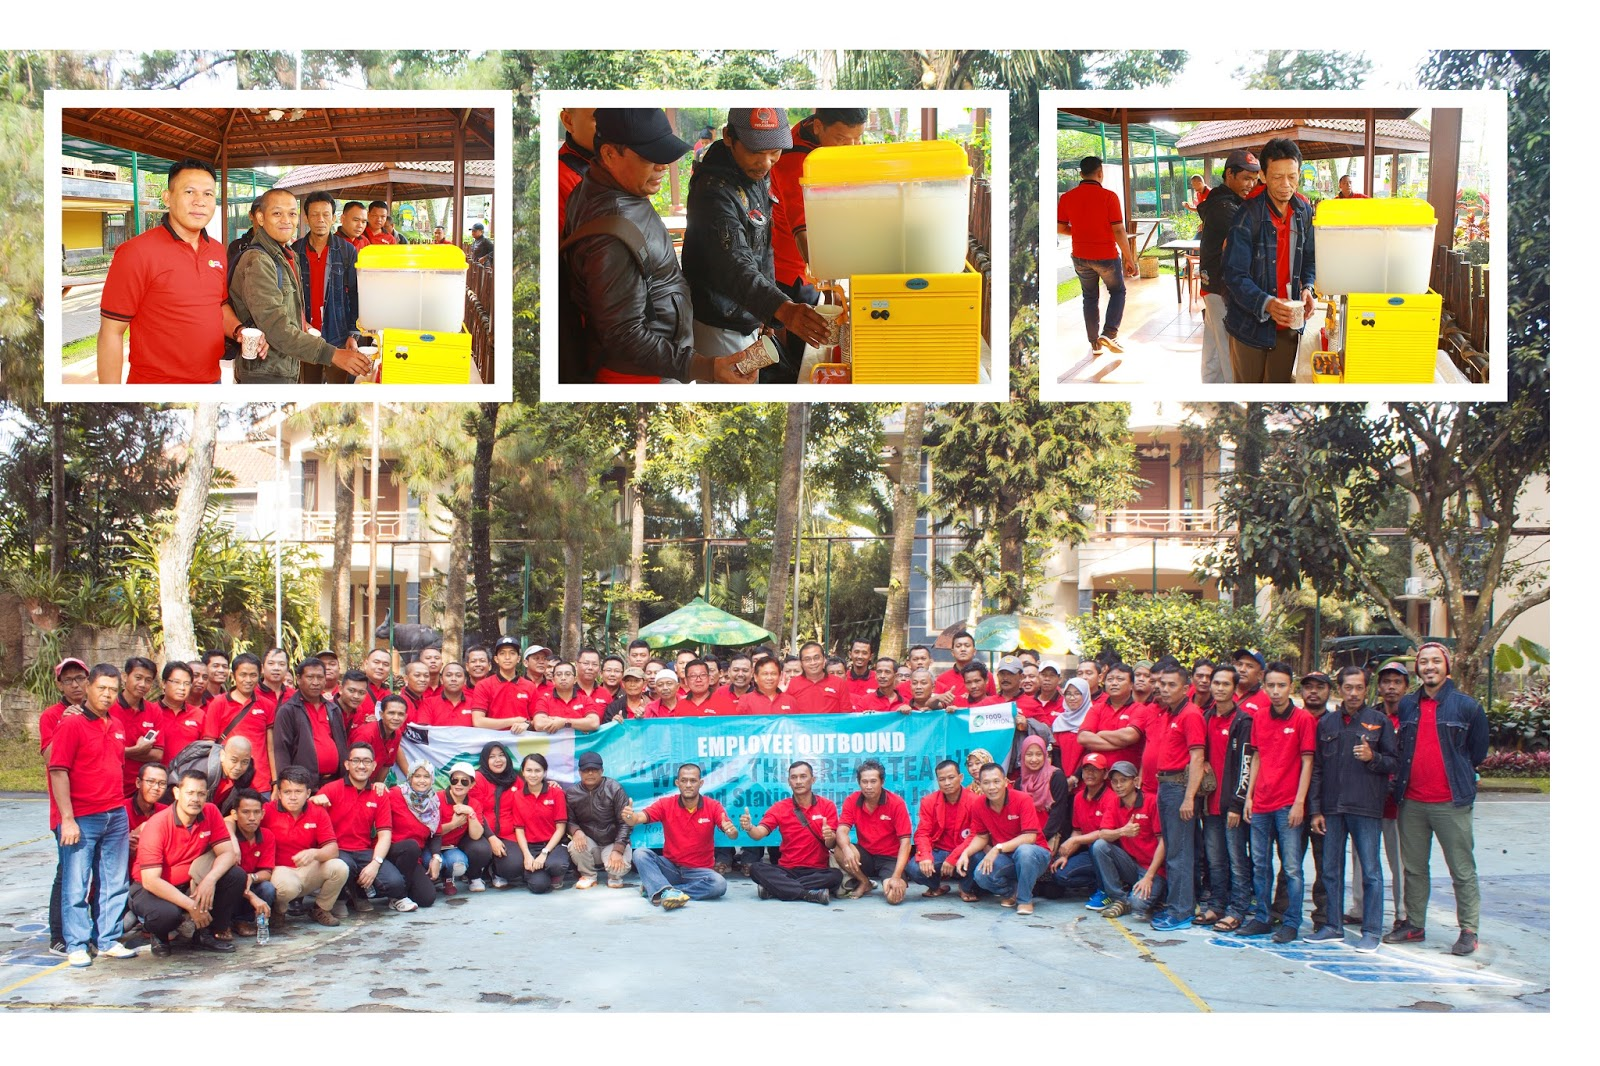 Employee Outbound 2016 PT Food Station Tjipinang Jaya to Puncak